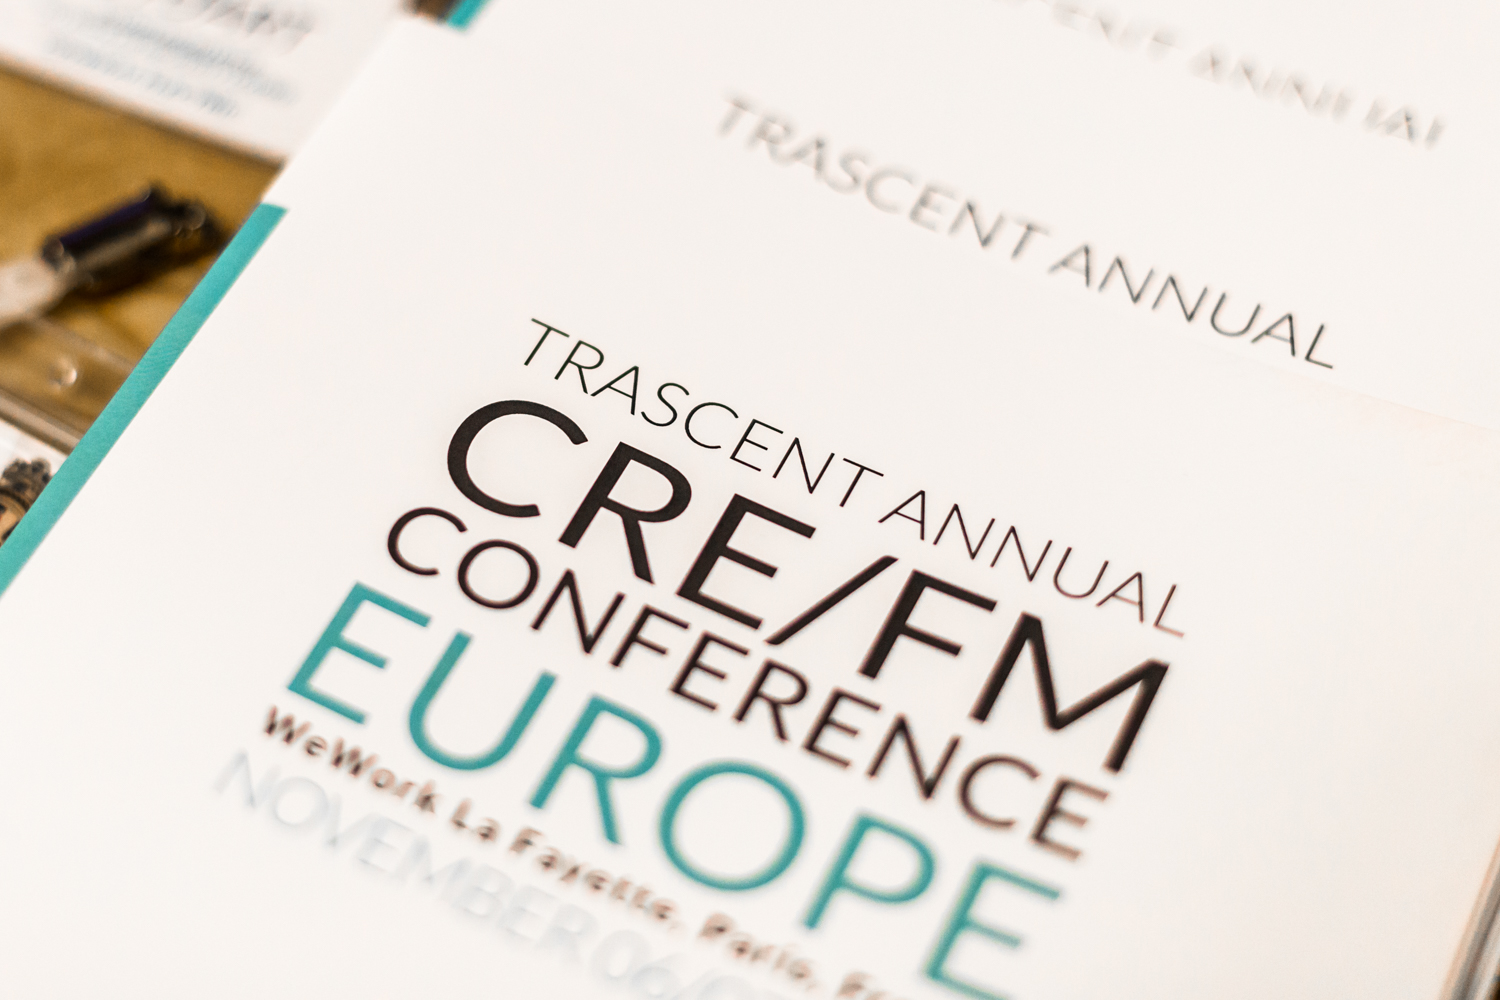 Europe Conference - Trascent